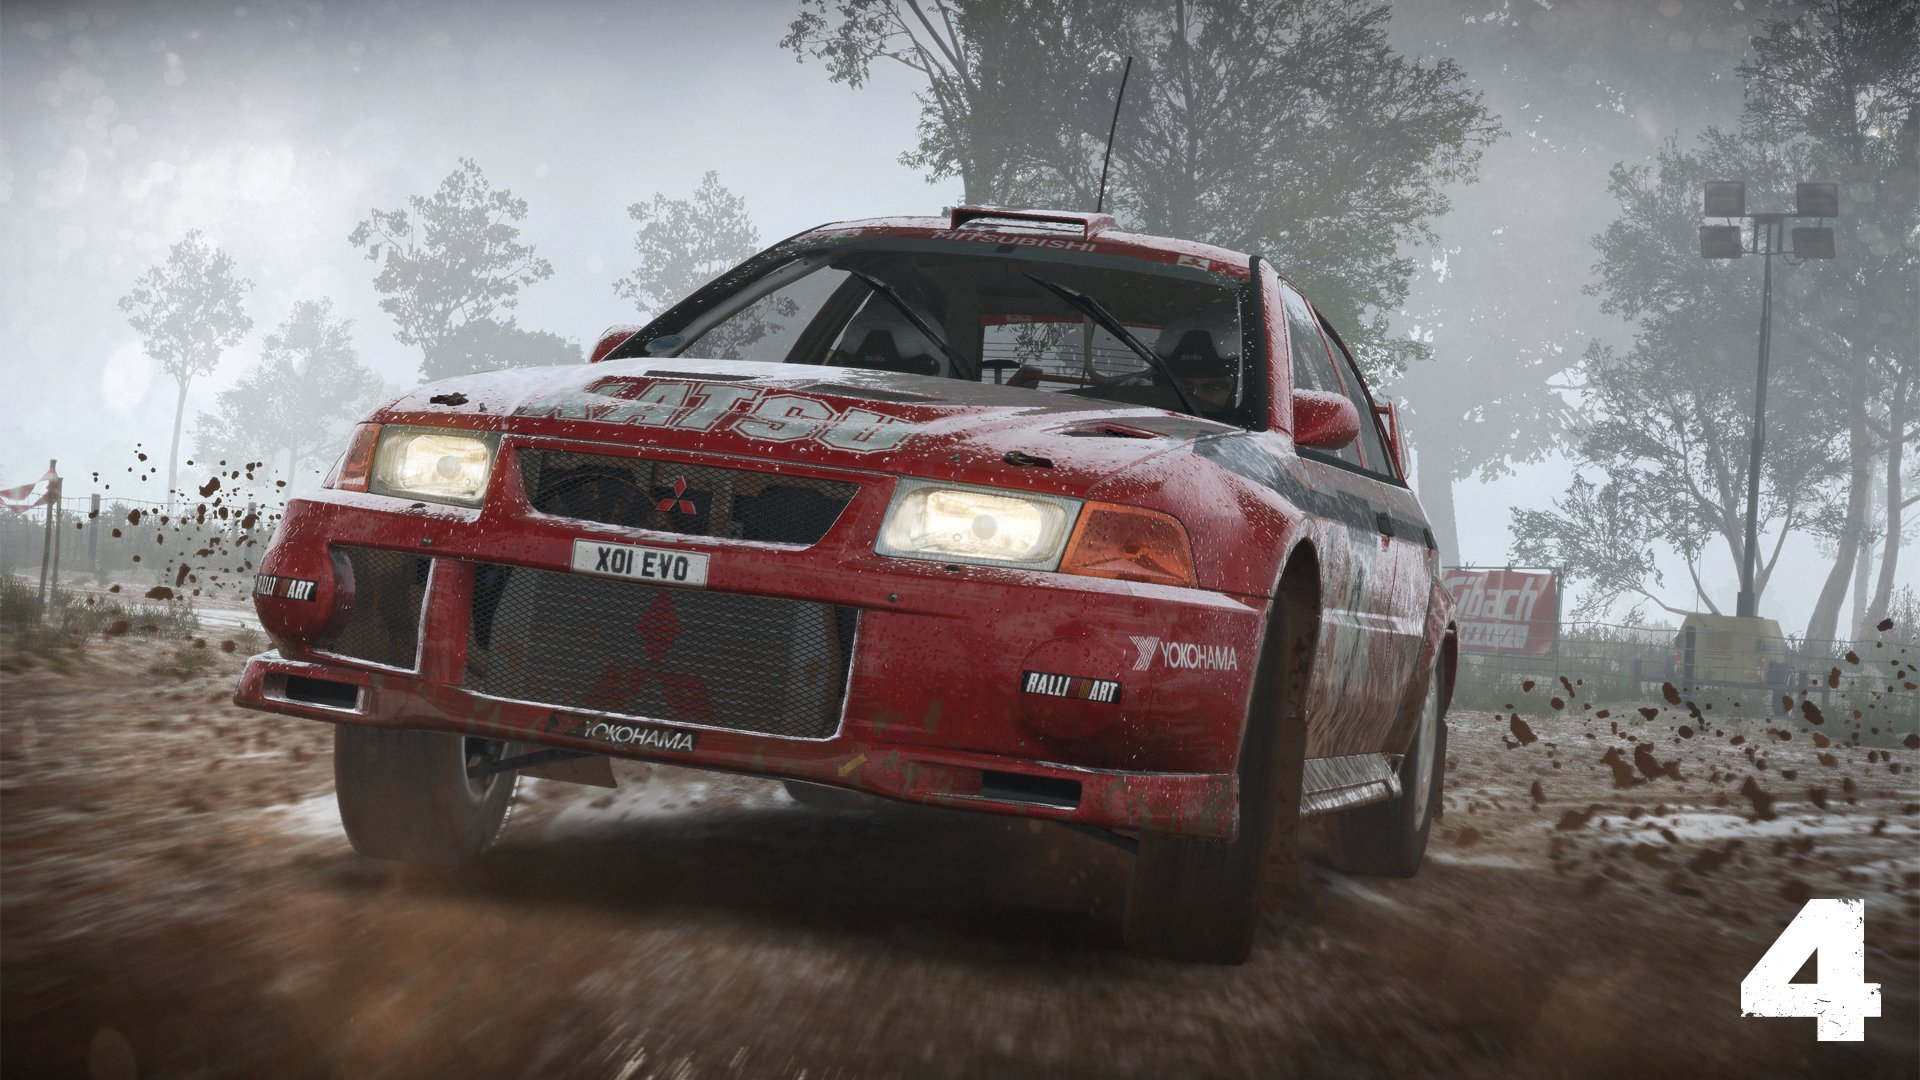 DiRT 4 red Evo, bad weather